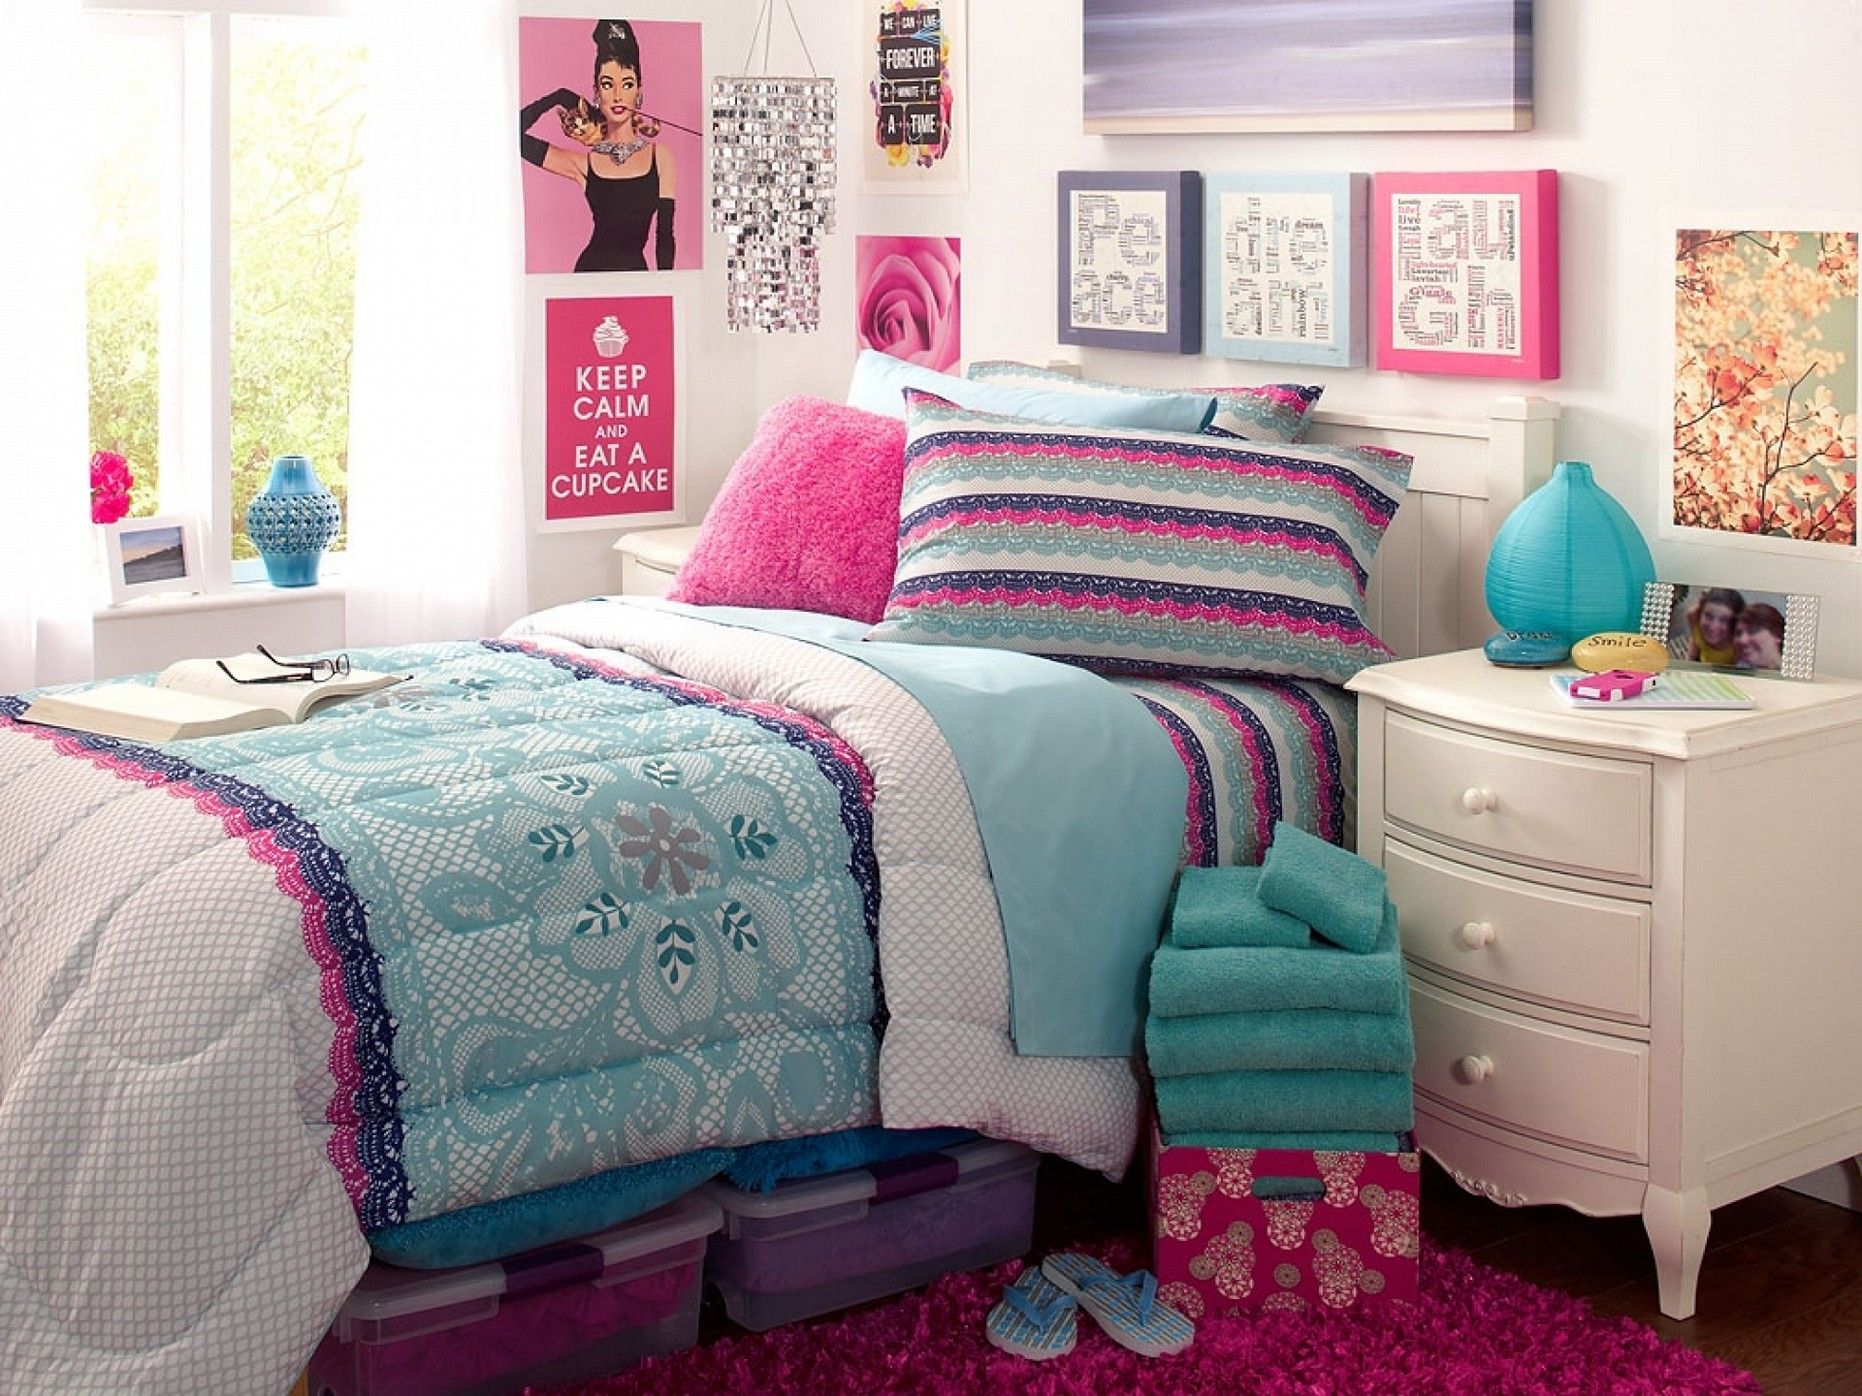 Amusing Design Of The Teenage Room Decor With White Wooden Cabinets Added With White Wall And Some Pics On The Wall Ideas